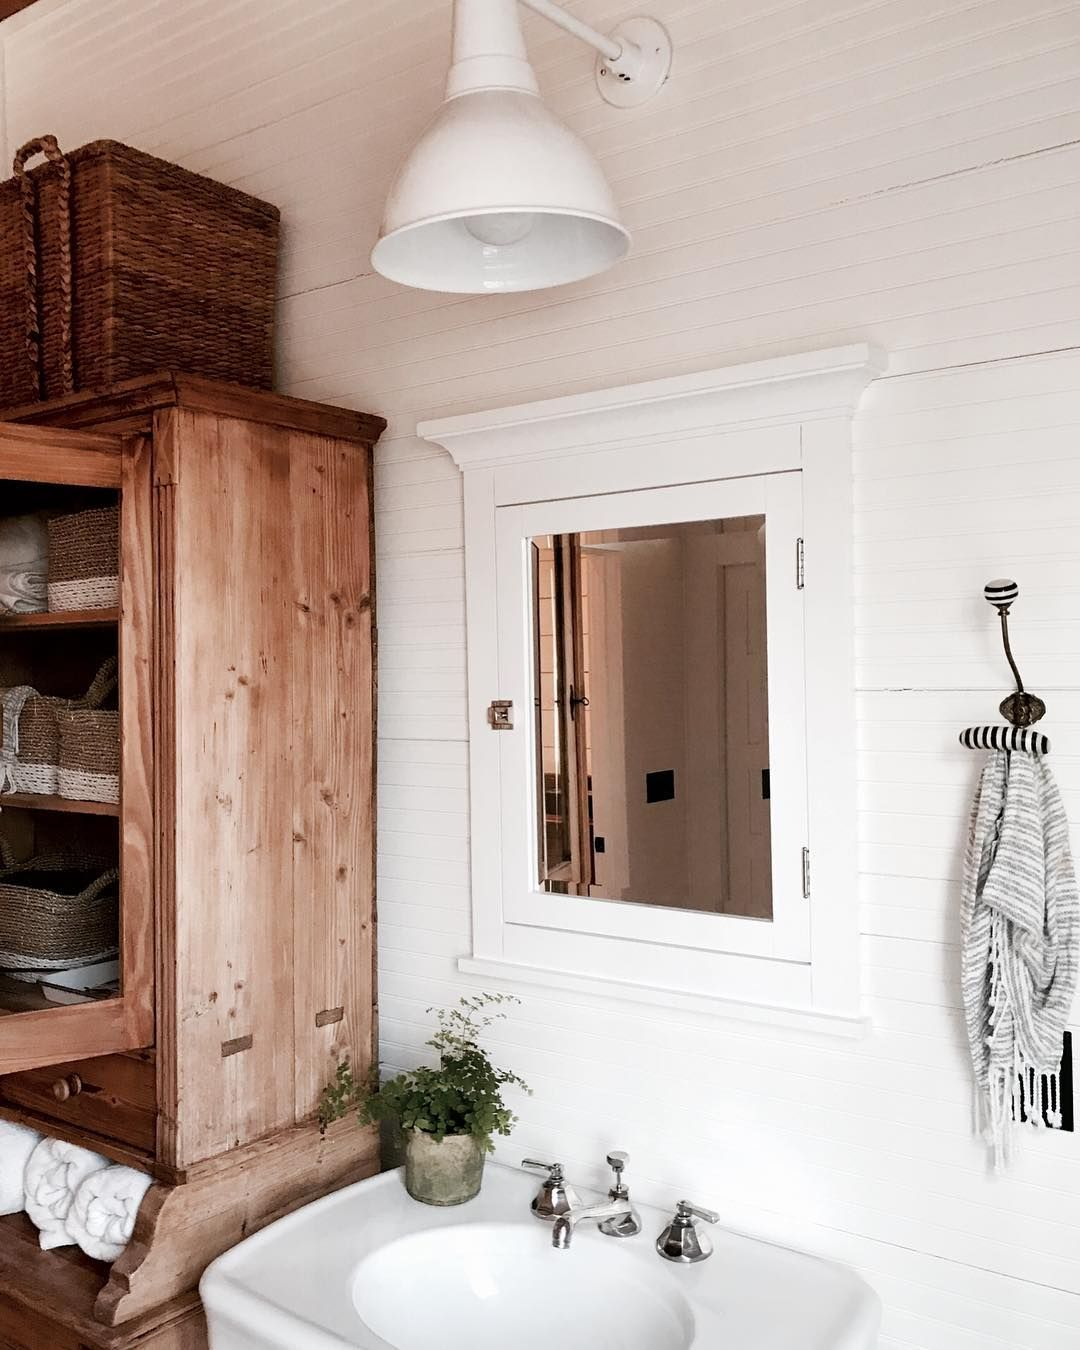 Rustic Pine Toung And Groove Interior Design: Pin By Jasmine Young On House